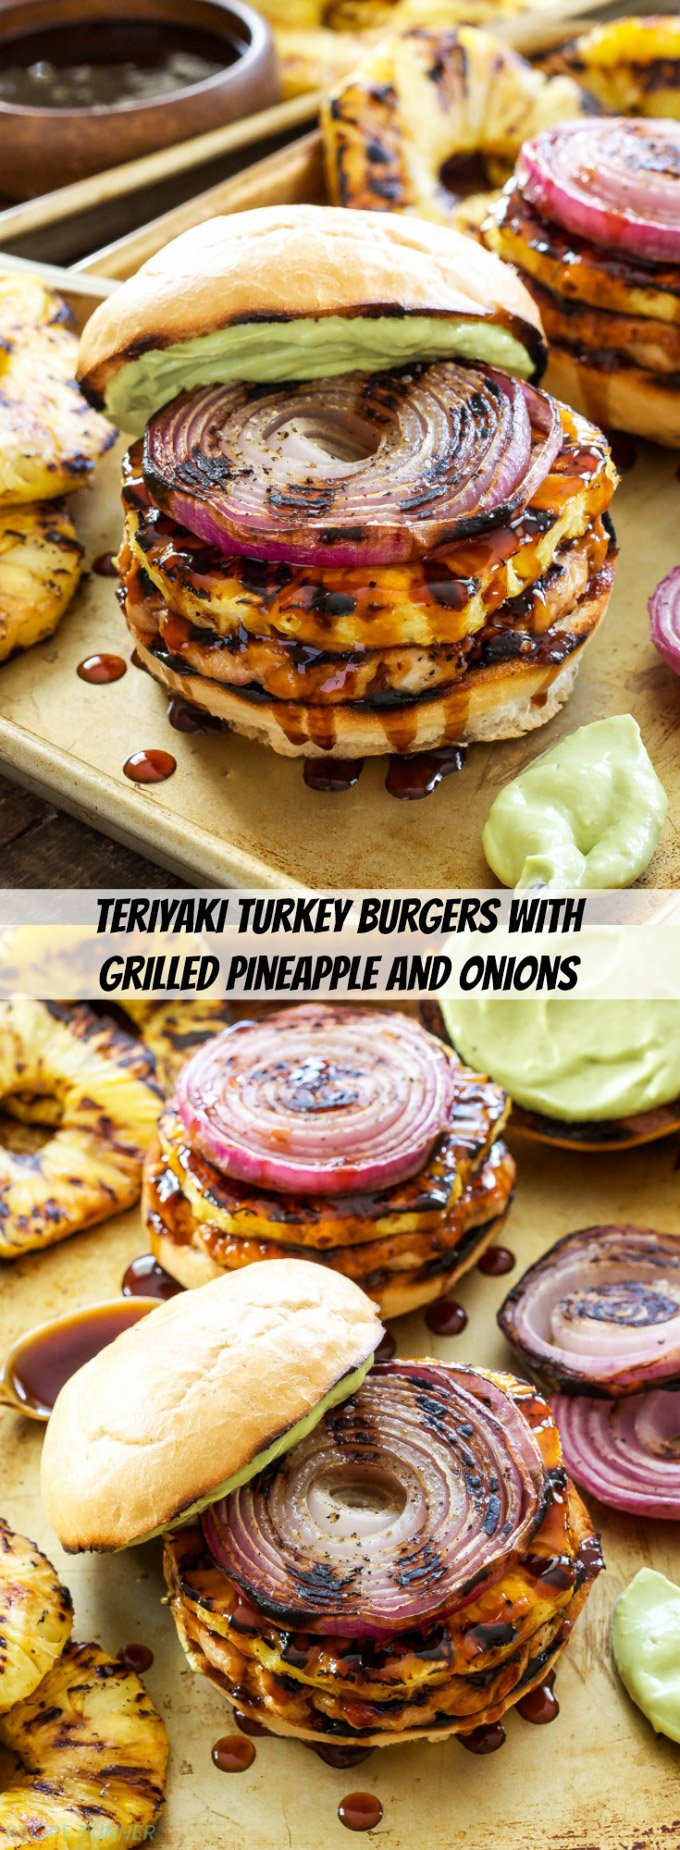 Teriyaki Turkey Burgers with Grilled Pineapple and Onions ...